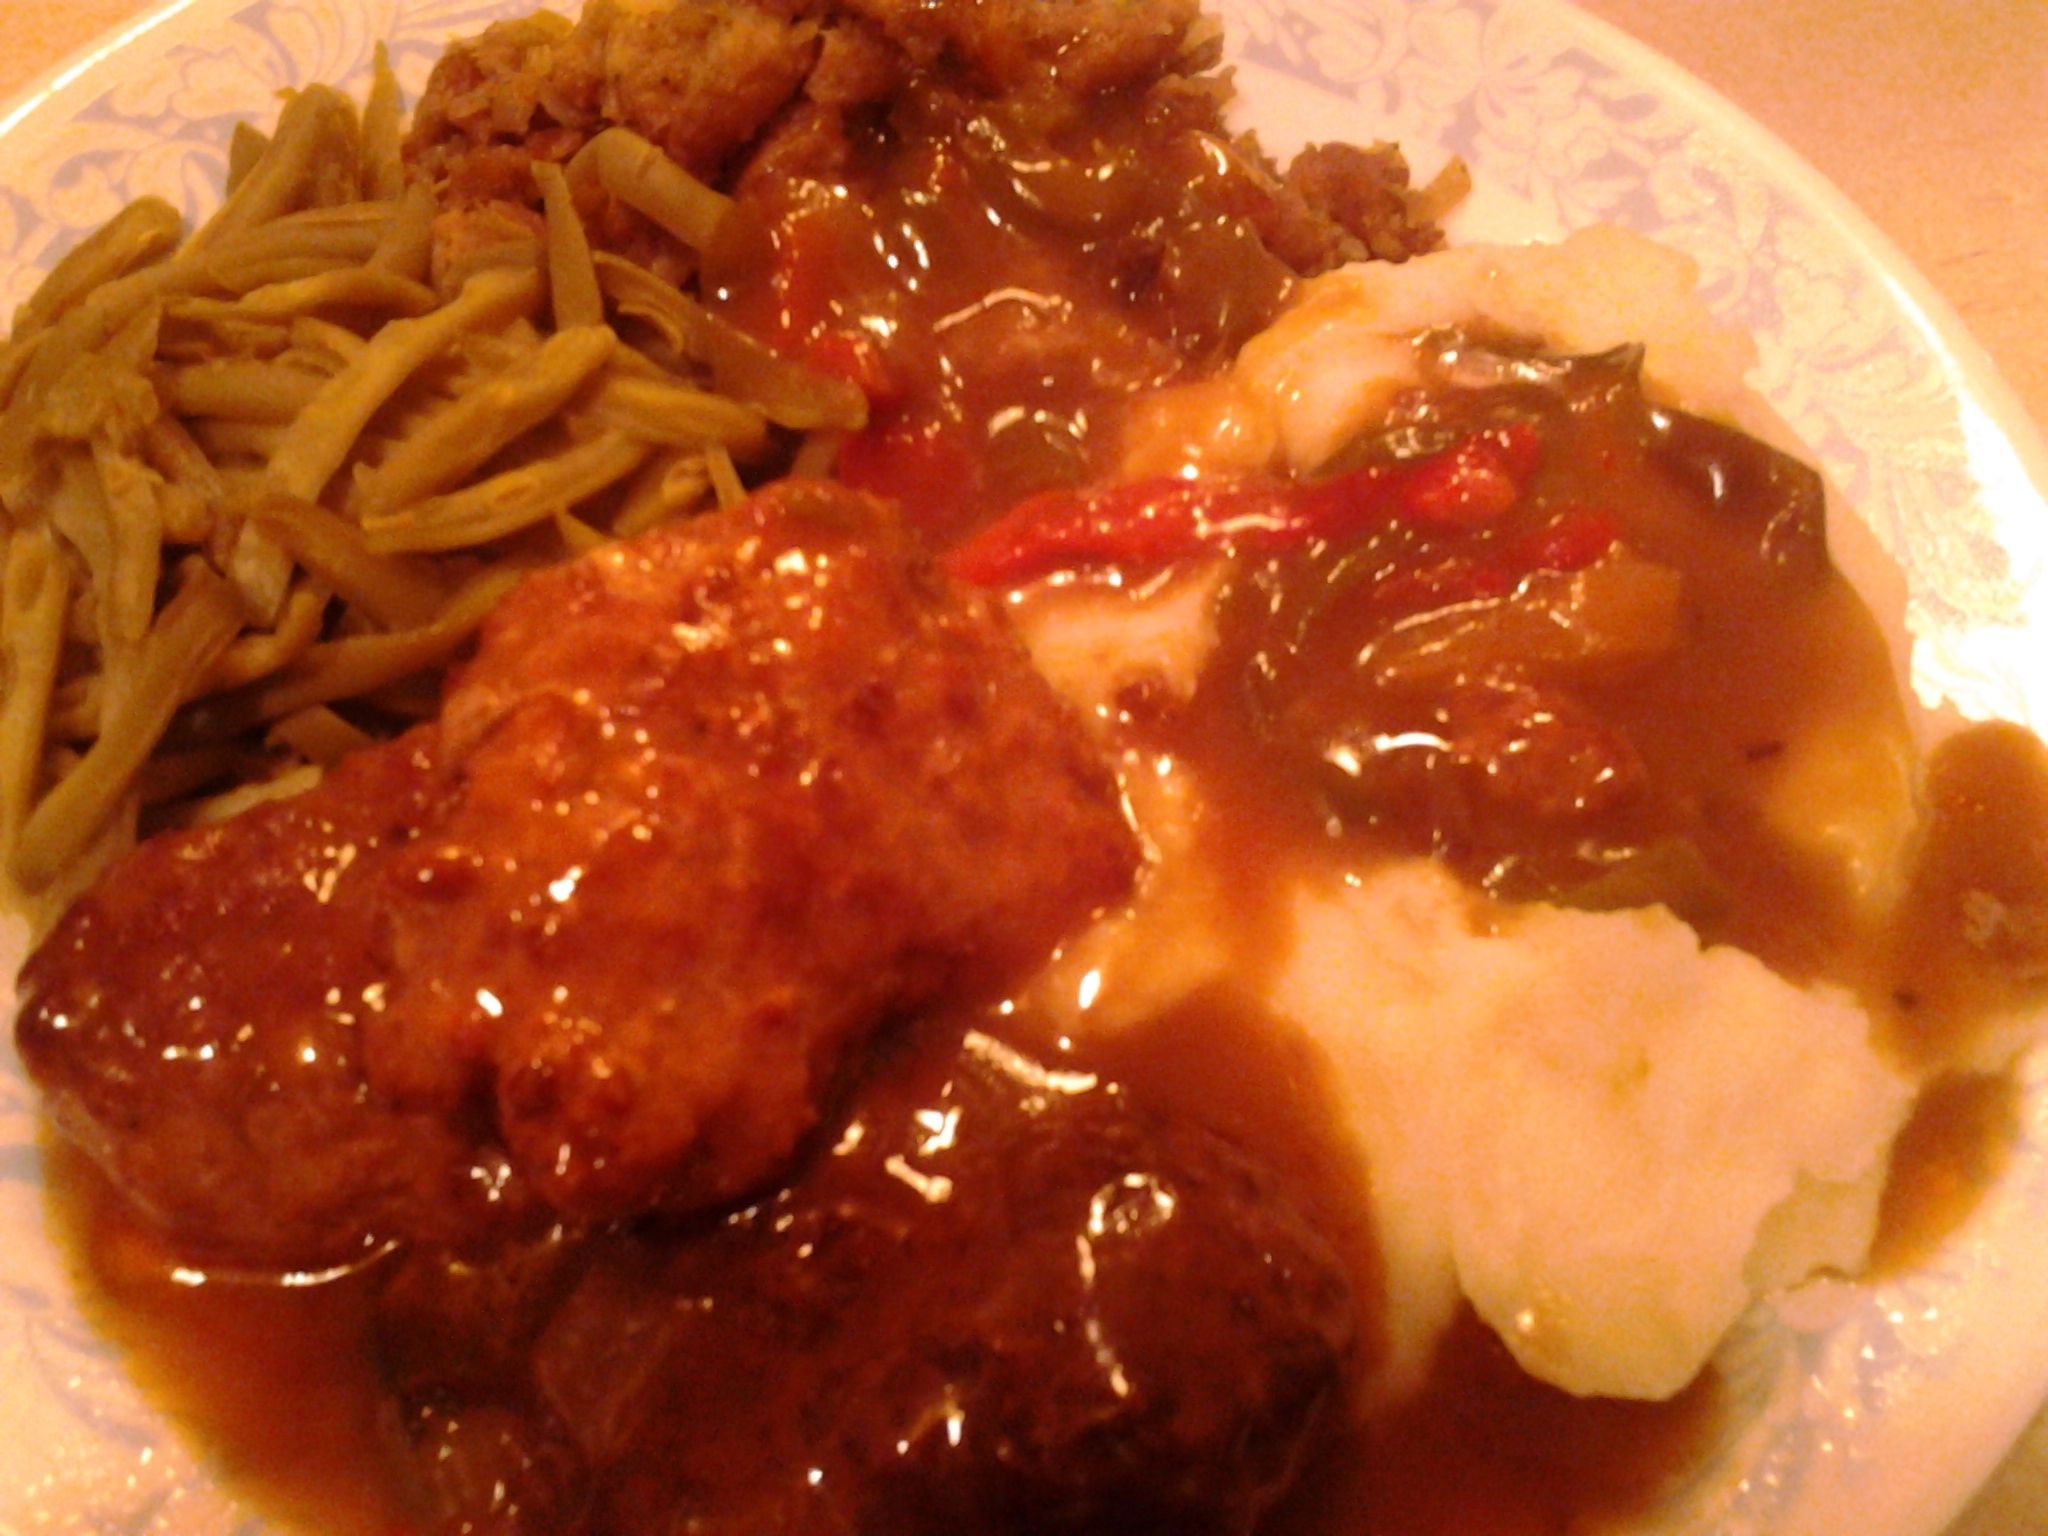 Crock pot Italian sausage patties, mashed taters, stuffing, green beans, all covered in a nice brown gravy.